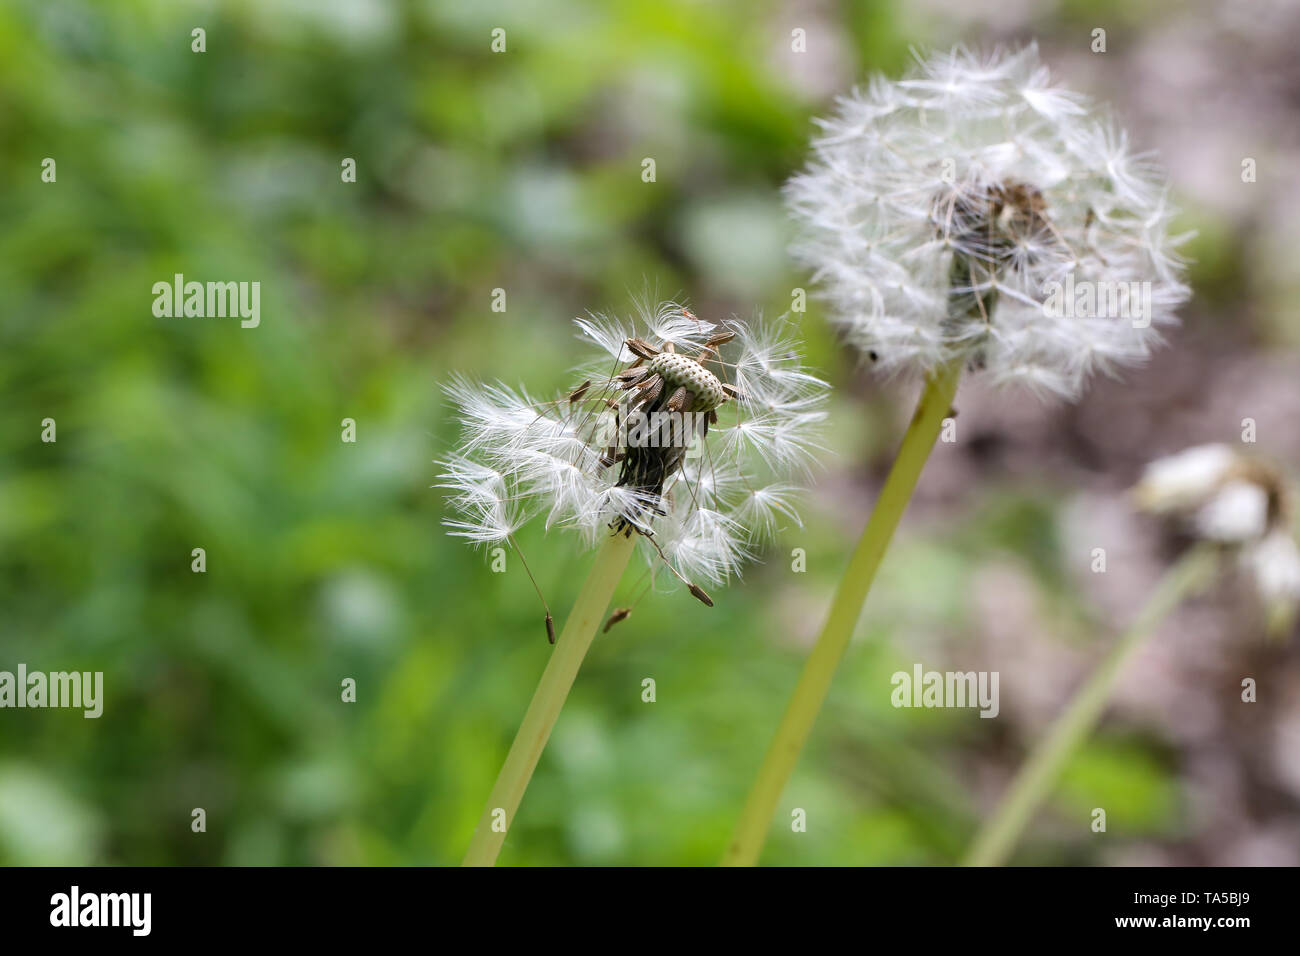 Bloomed dandelion in nature grows from green grass. Old dandelion closeup. Nature background of dandelions in the grass. Green nature background. - Stock Image